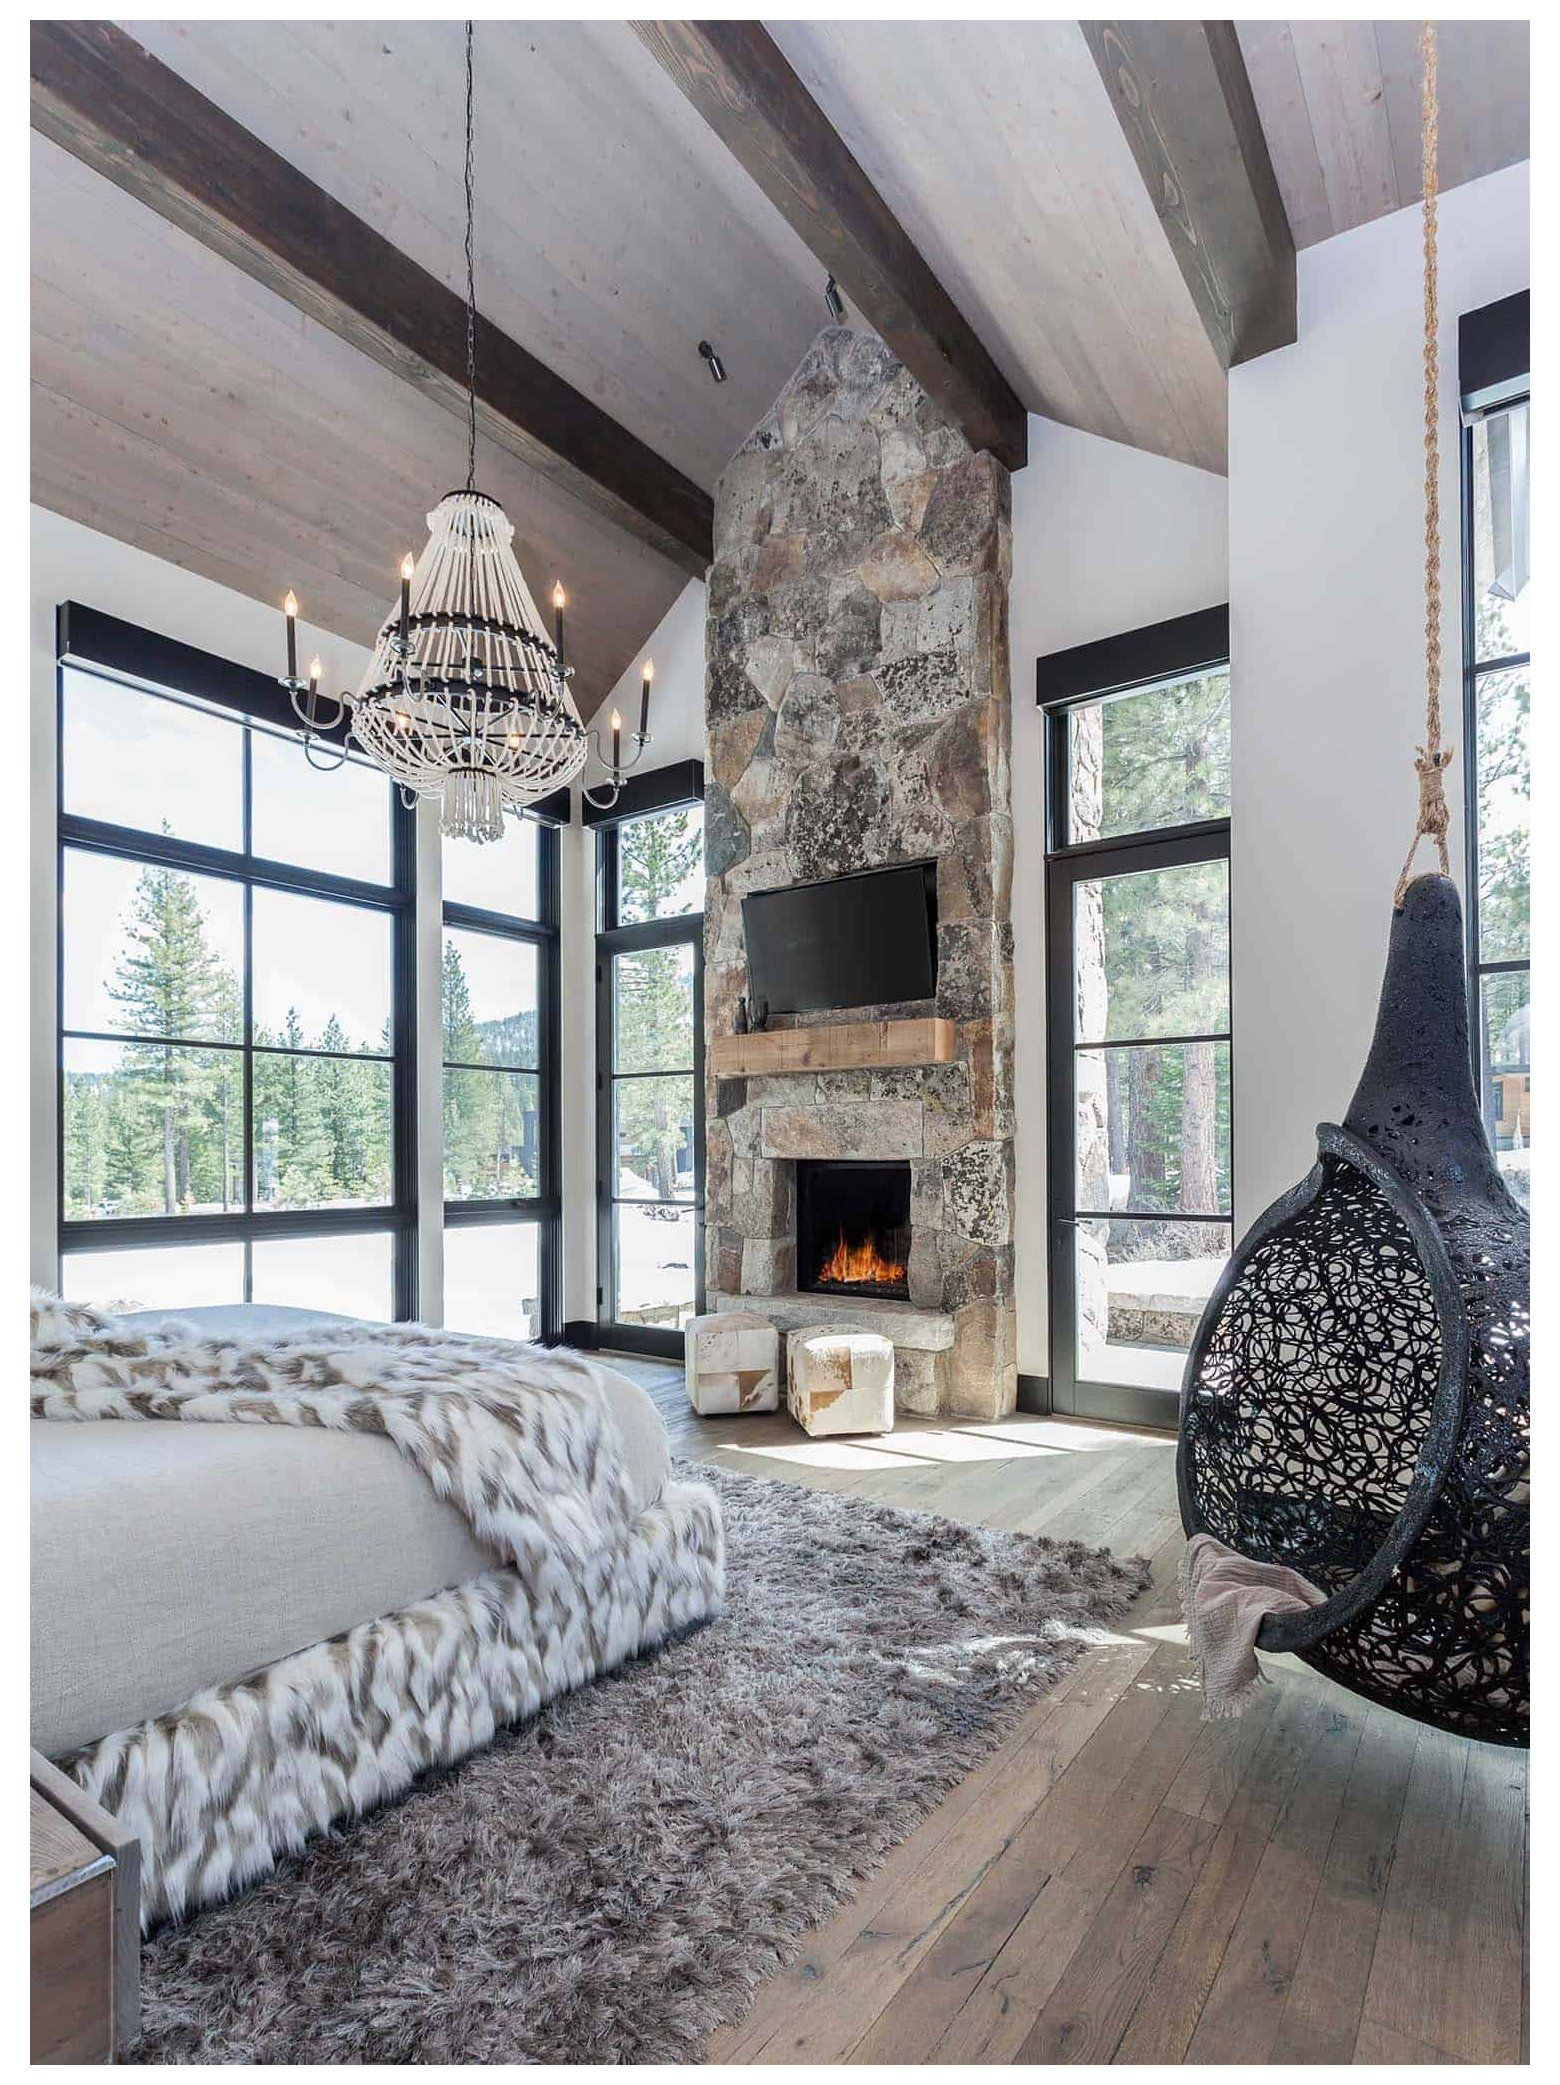 French Farmhouse Bedroom Style Inspiration A Blog About Home And Garden Design Including French Country Design In 2020 Dream Home Design House House Rooms